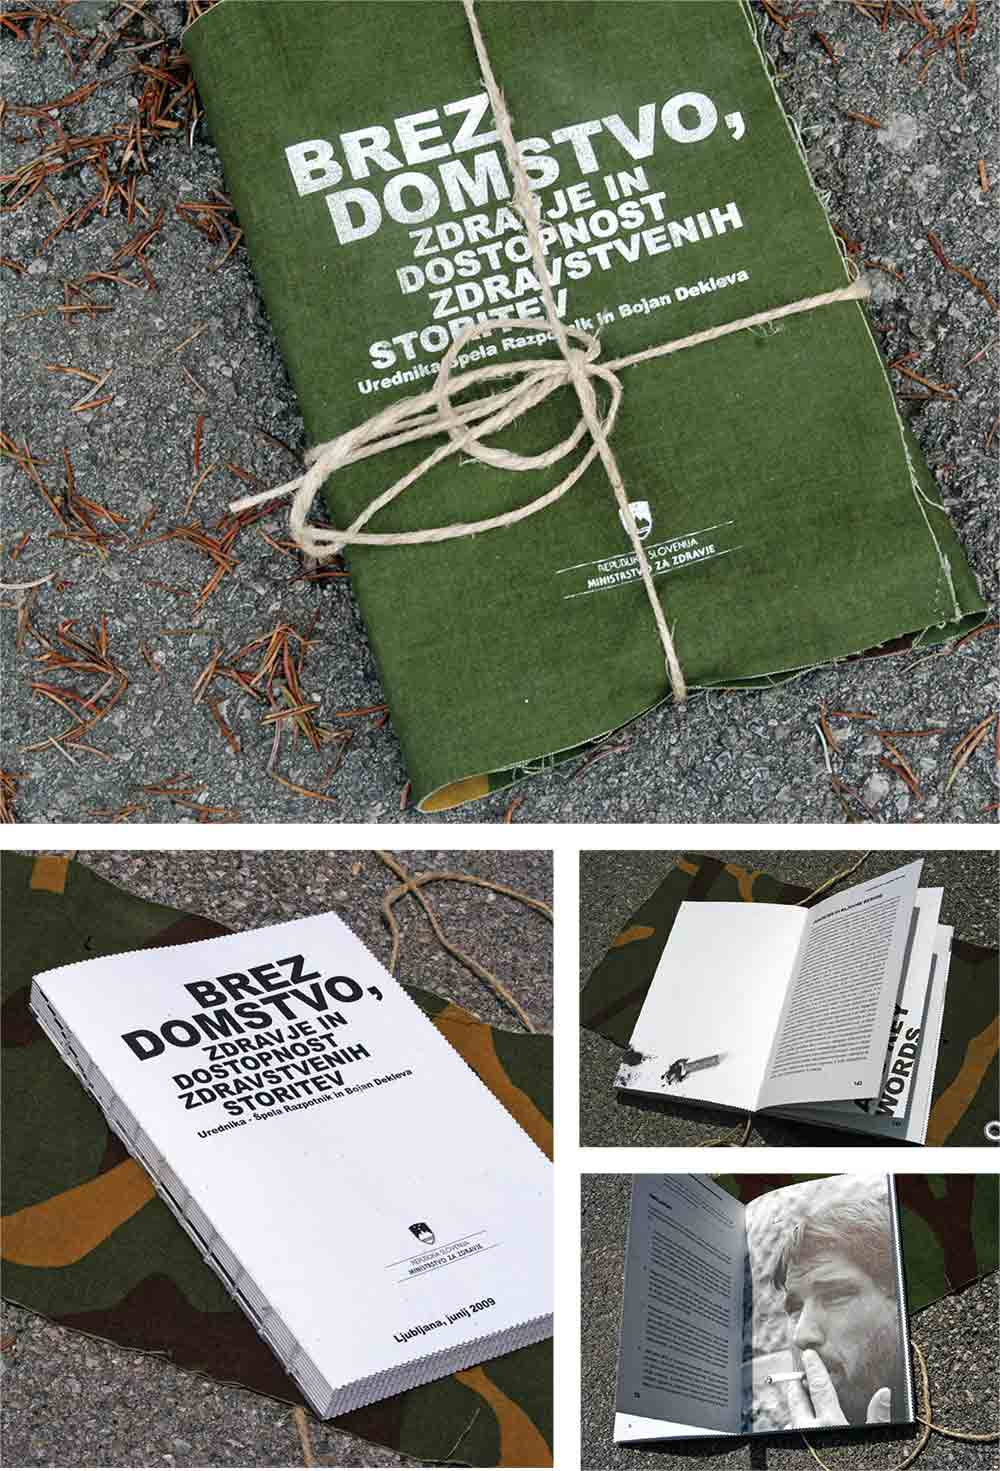 Knjiga Brezdomci / Book Homeless